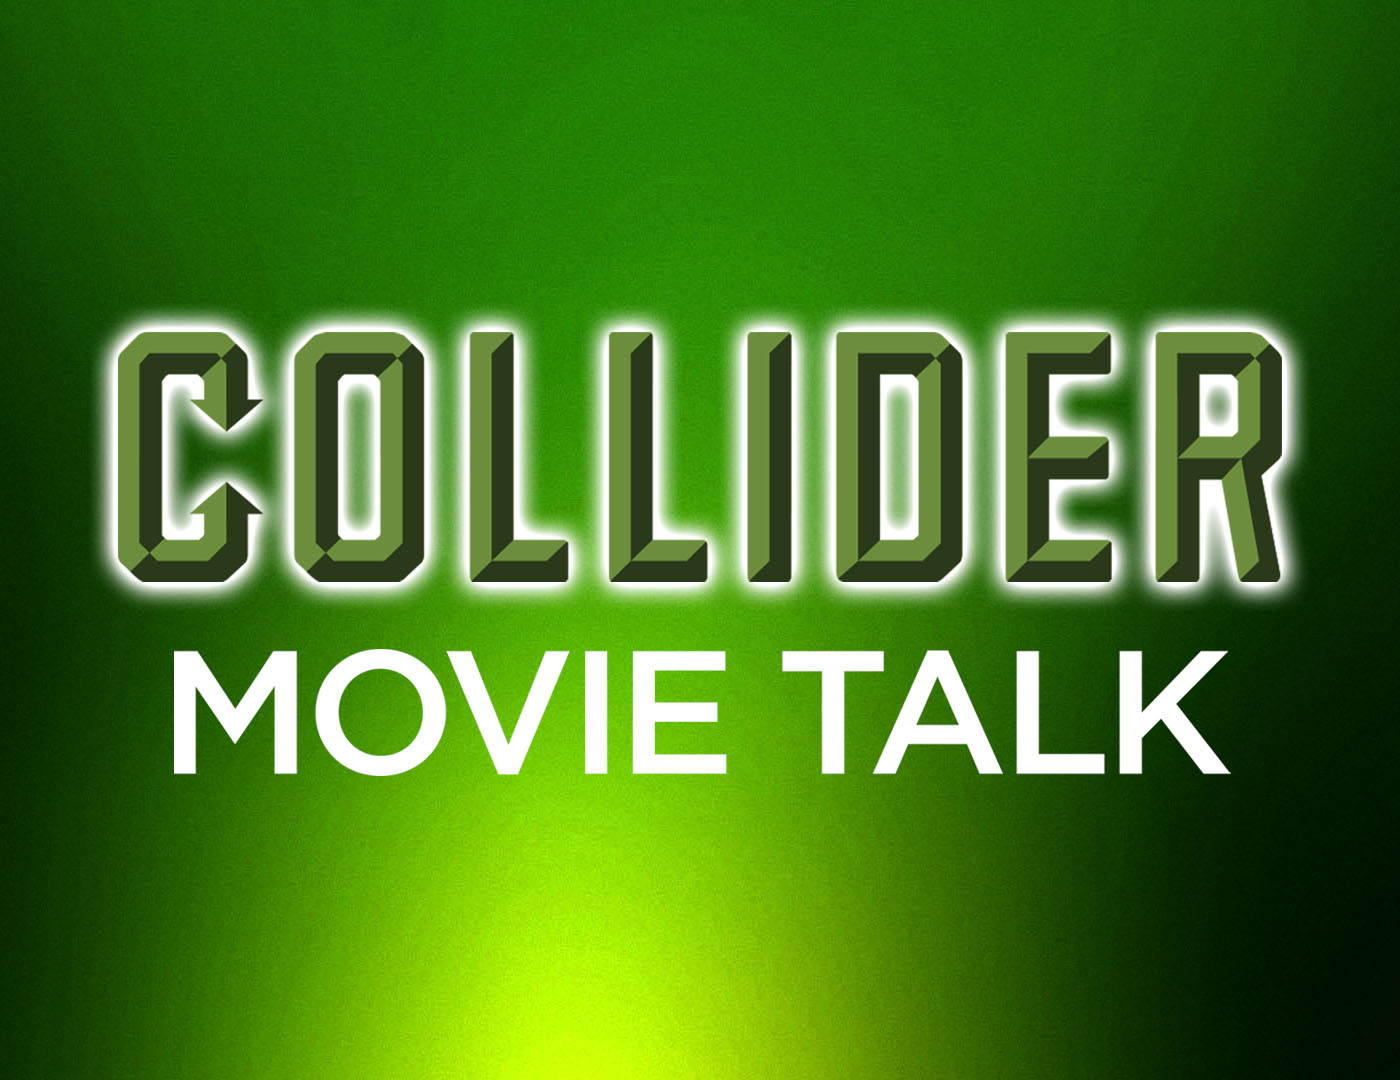 Collider Movie Talk - San Andreas 2 Announced With The Rock